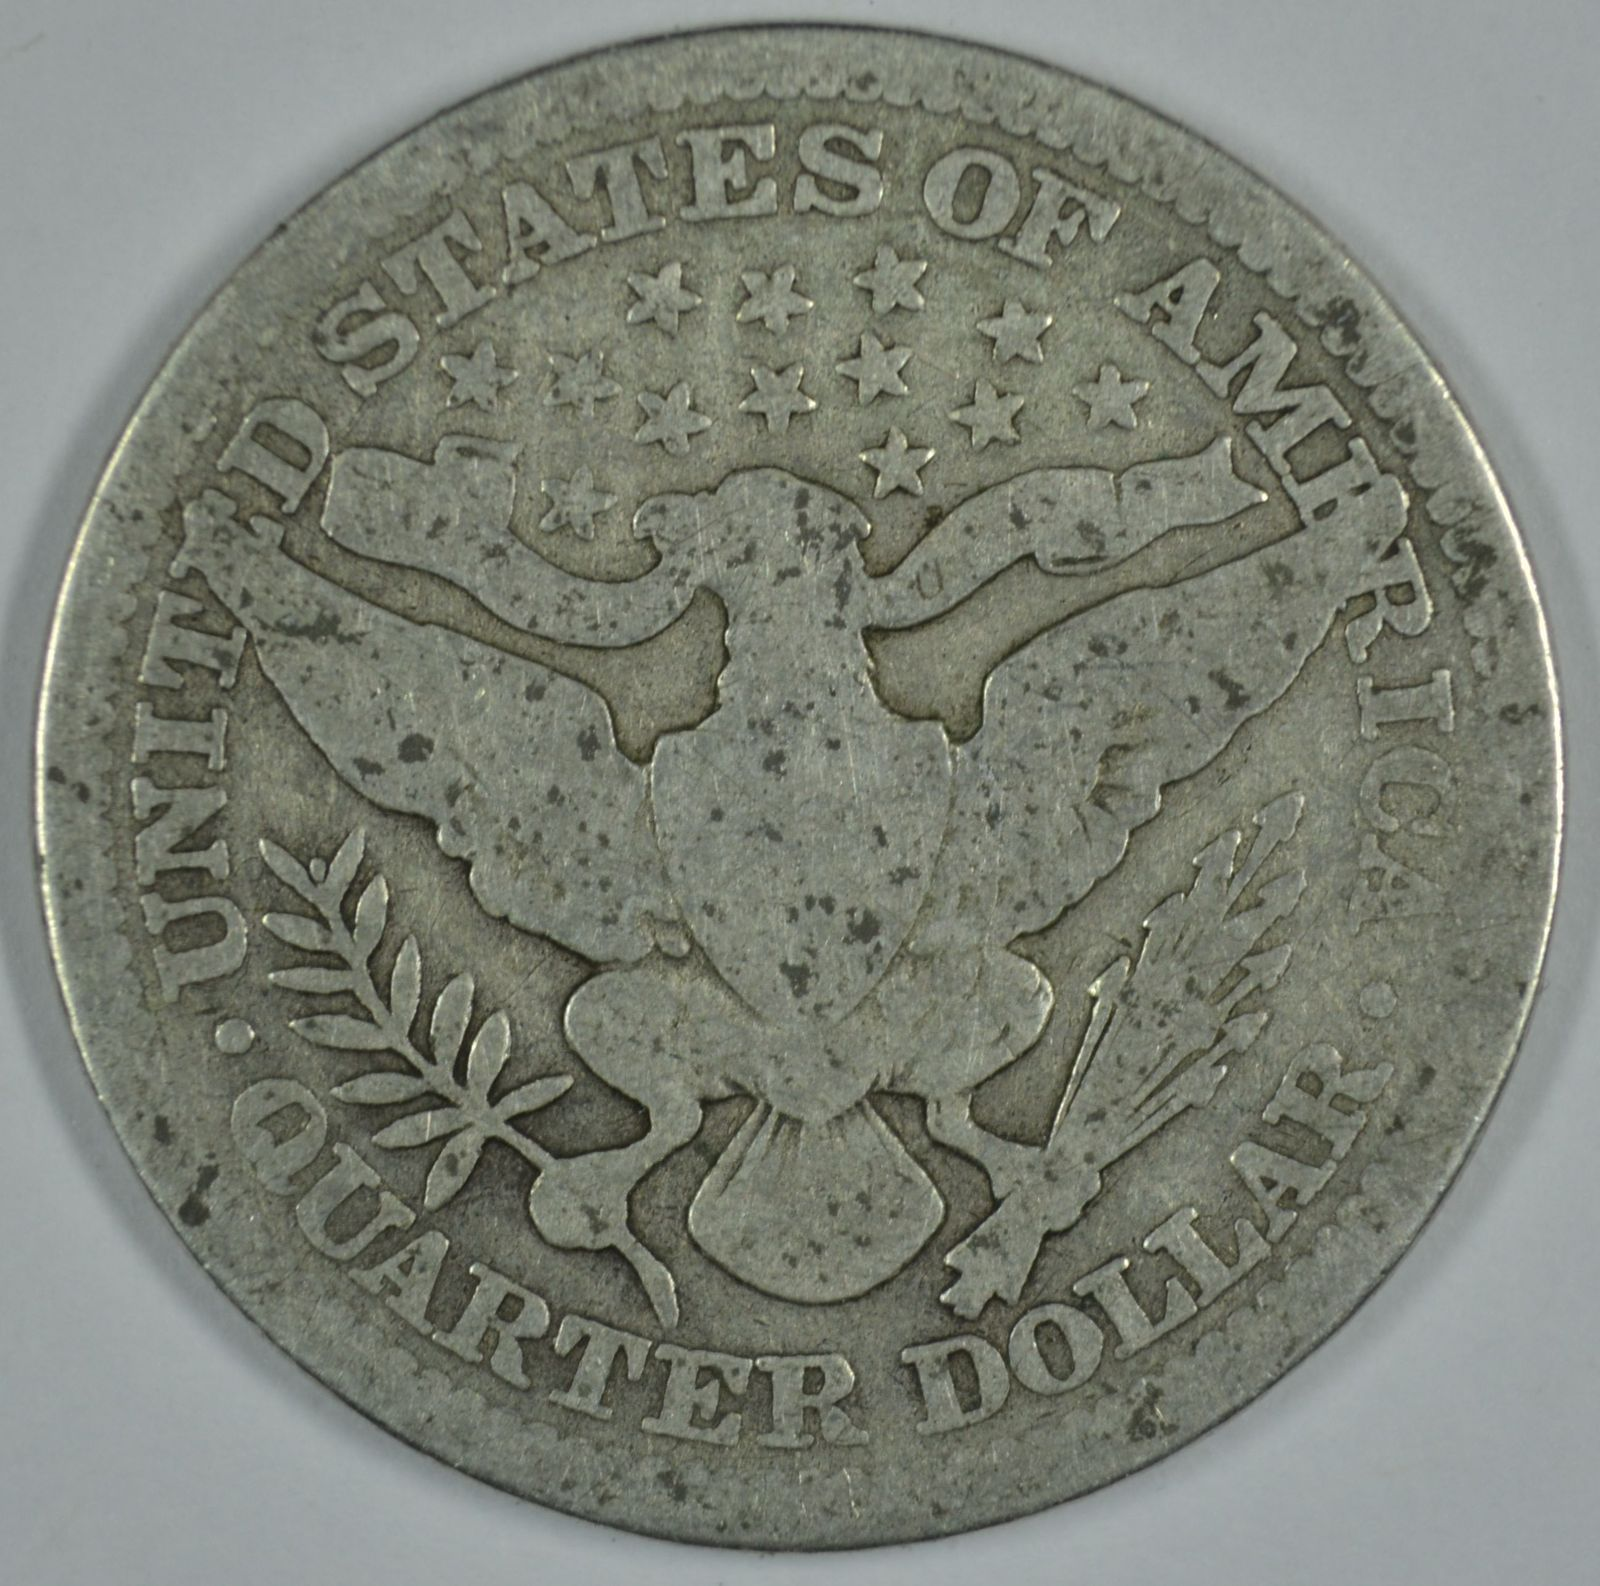 1912 P Barber circulated silver quarter